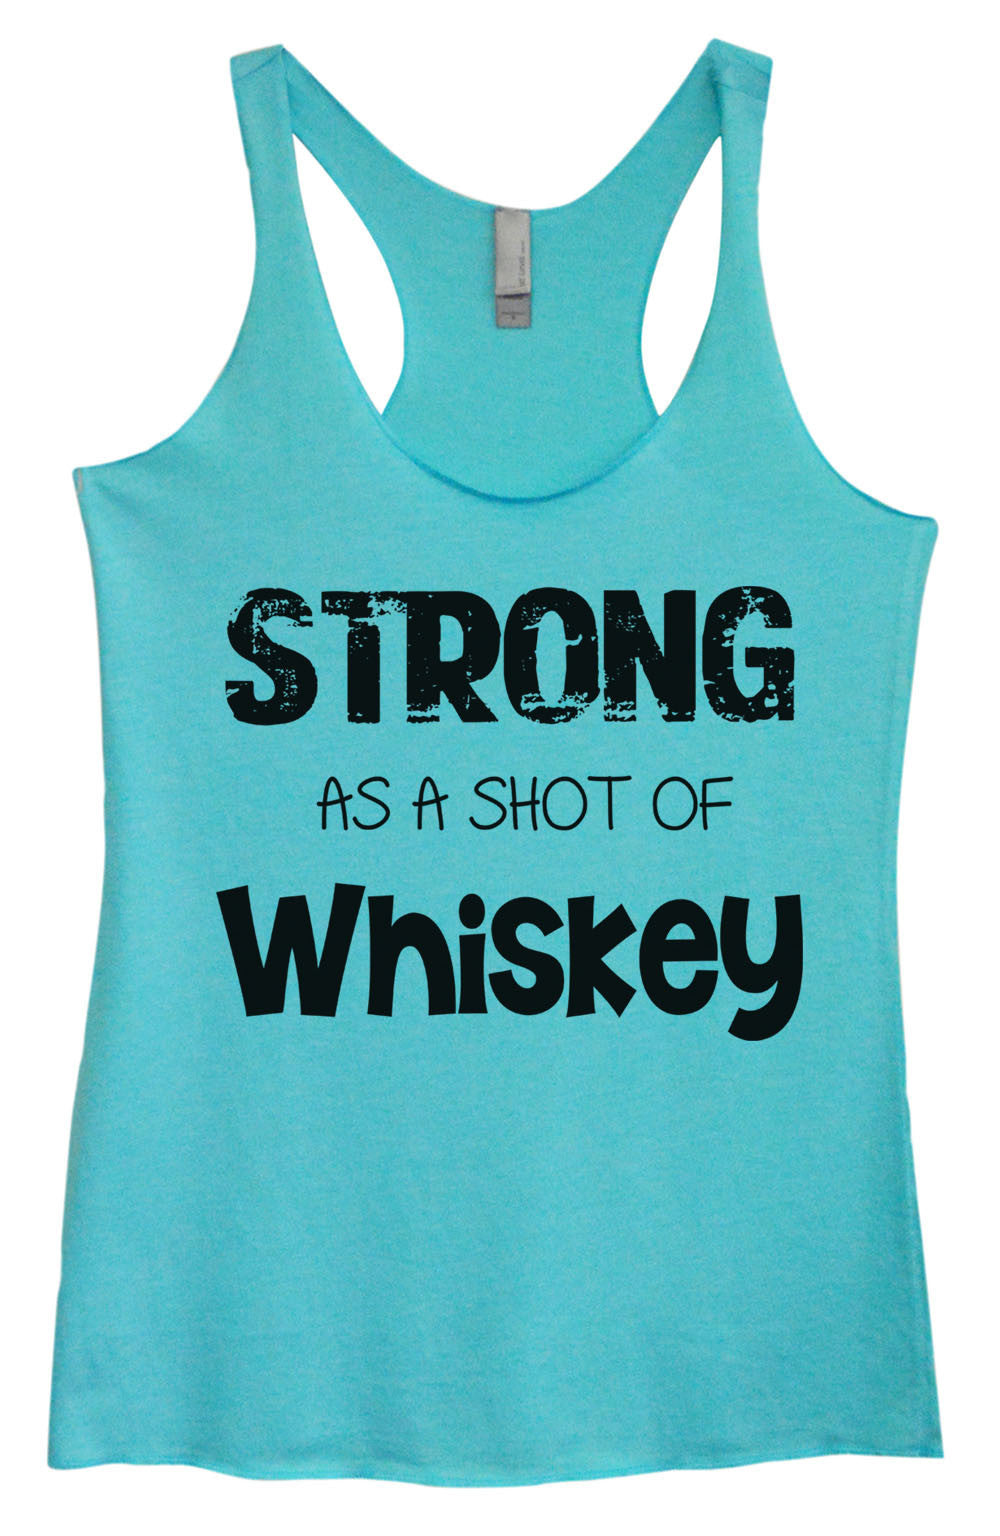 Womens Fashion Triblend Tank Top - Strong As A Shot Of Whiskey - Tri-717 - Funny Shirts Tank Tops Burnouts and Triblends  - 3